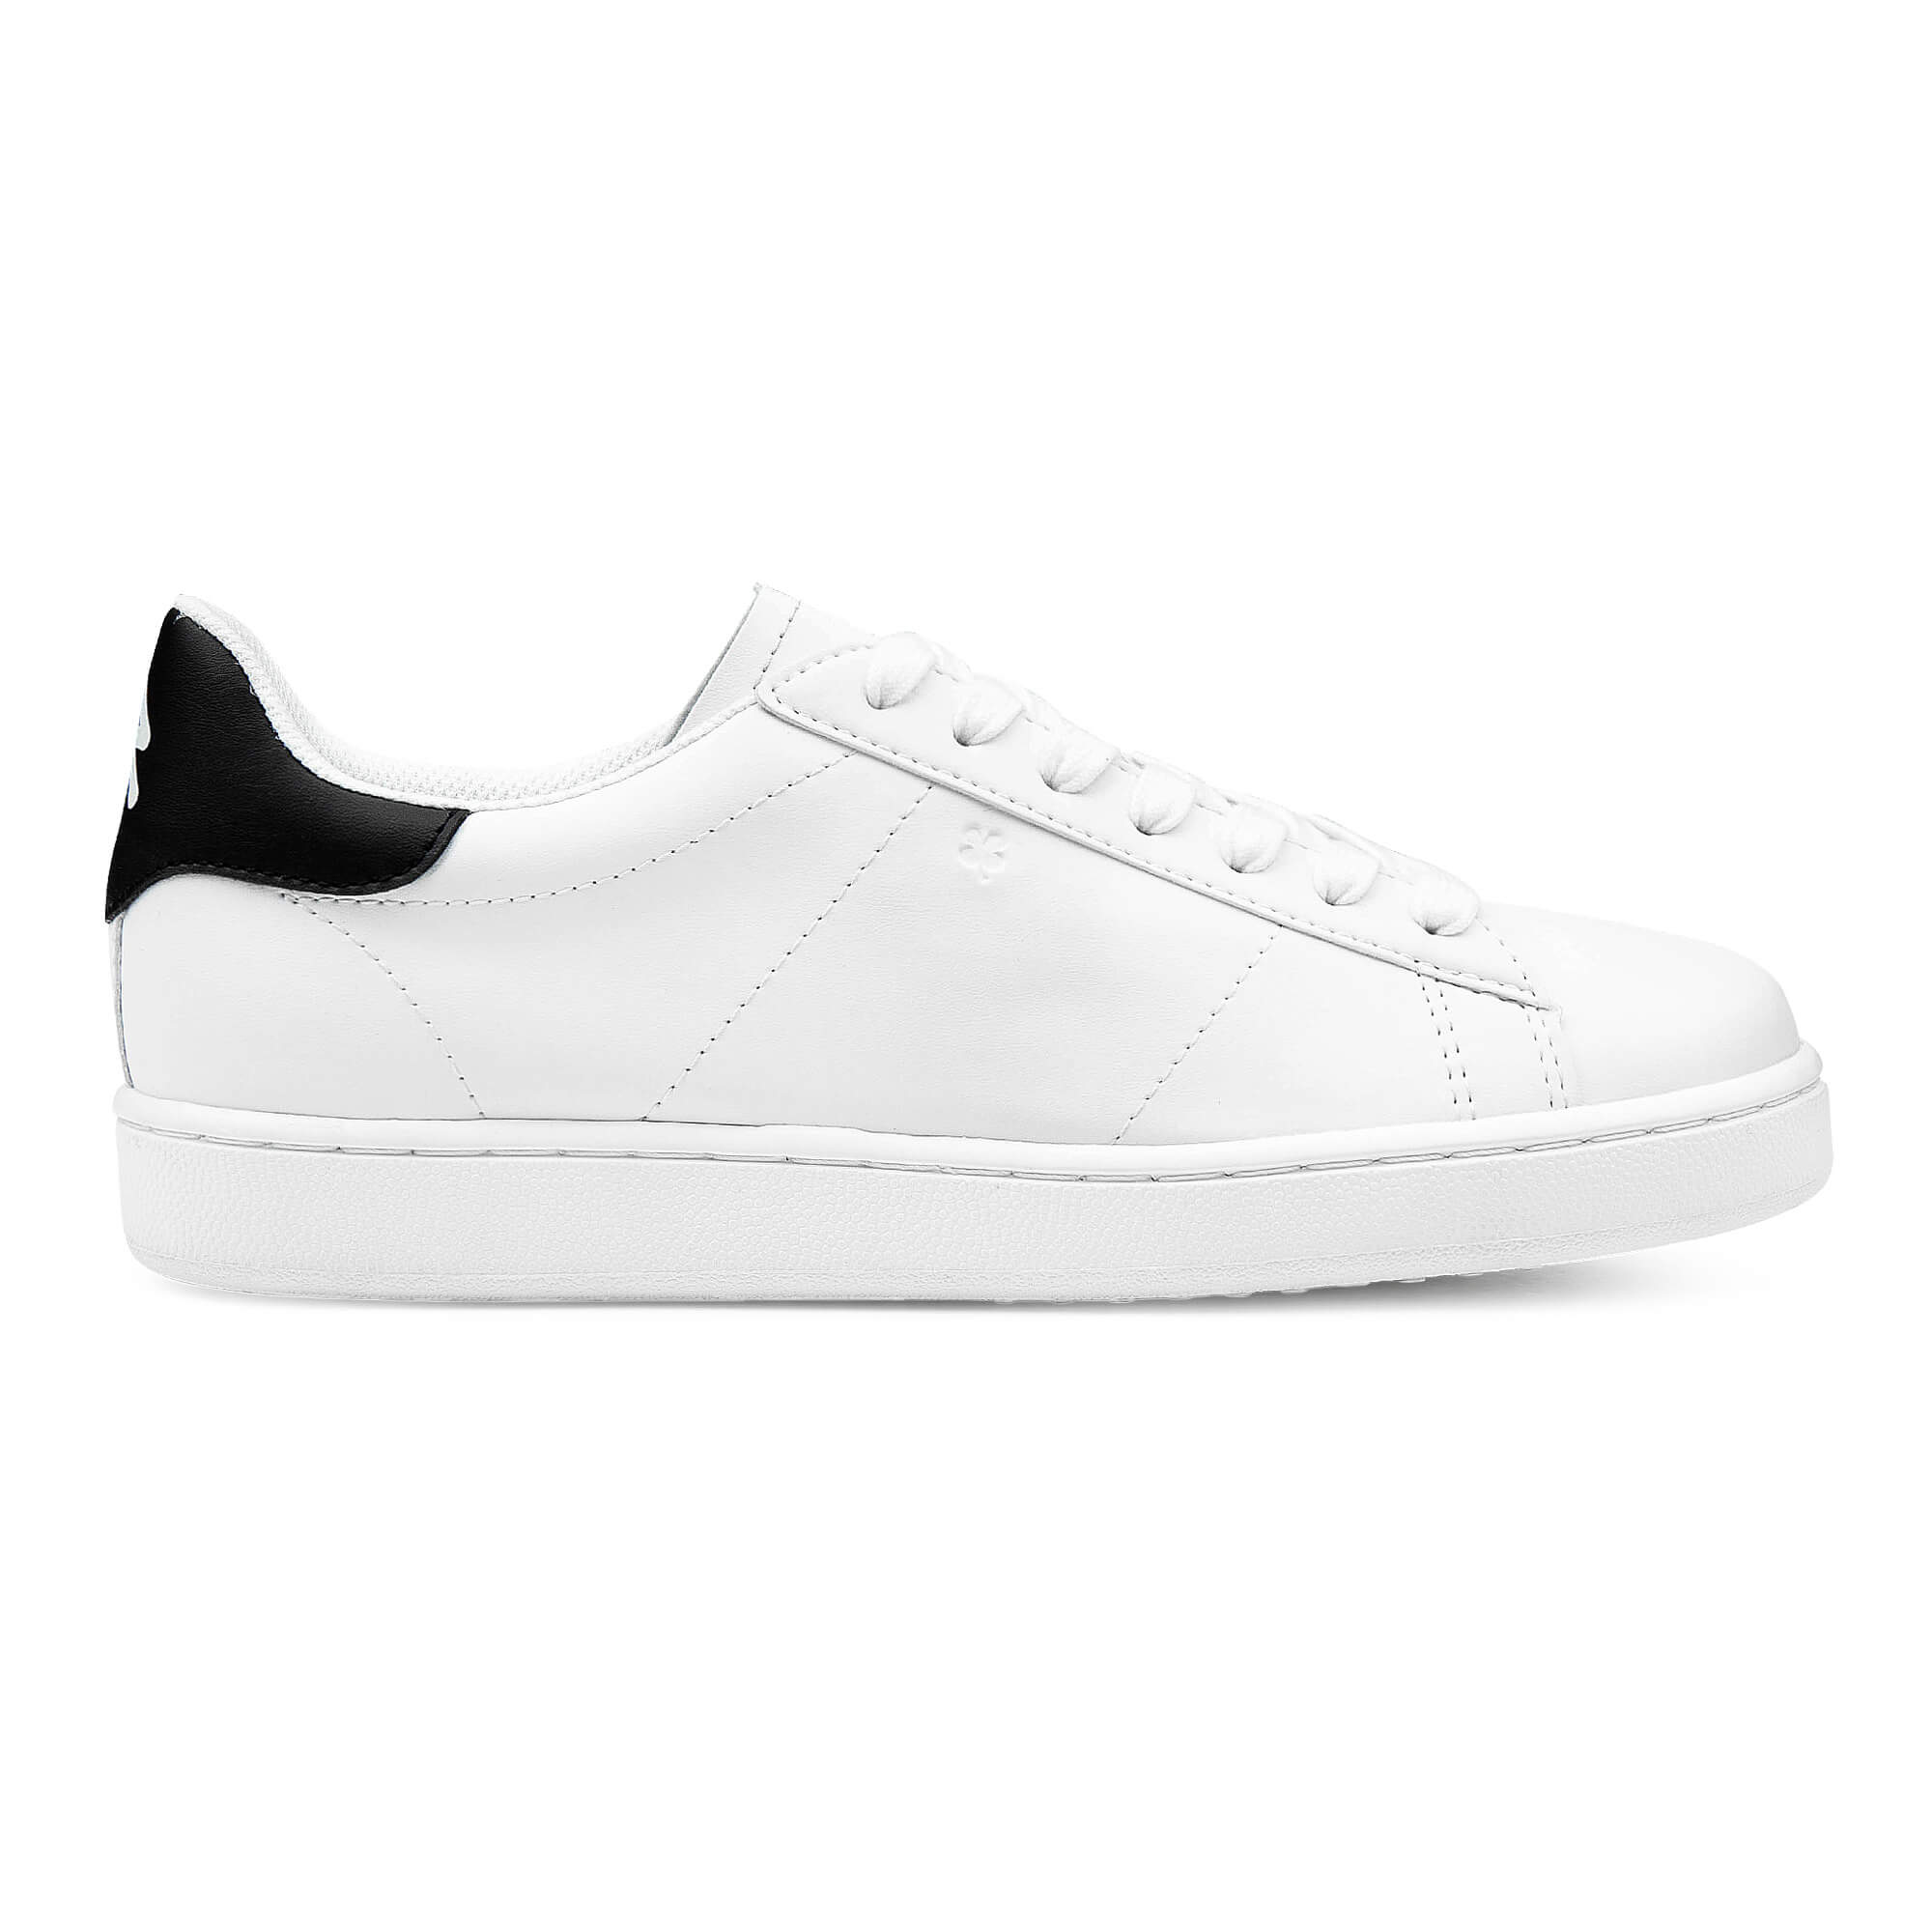 Robey Adrien Sneakers